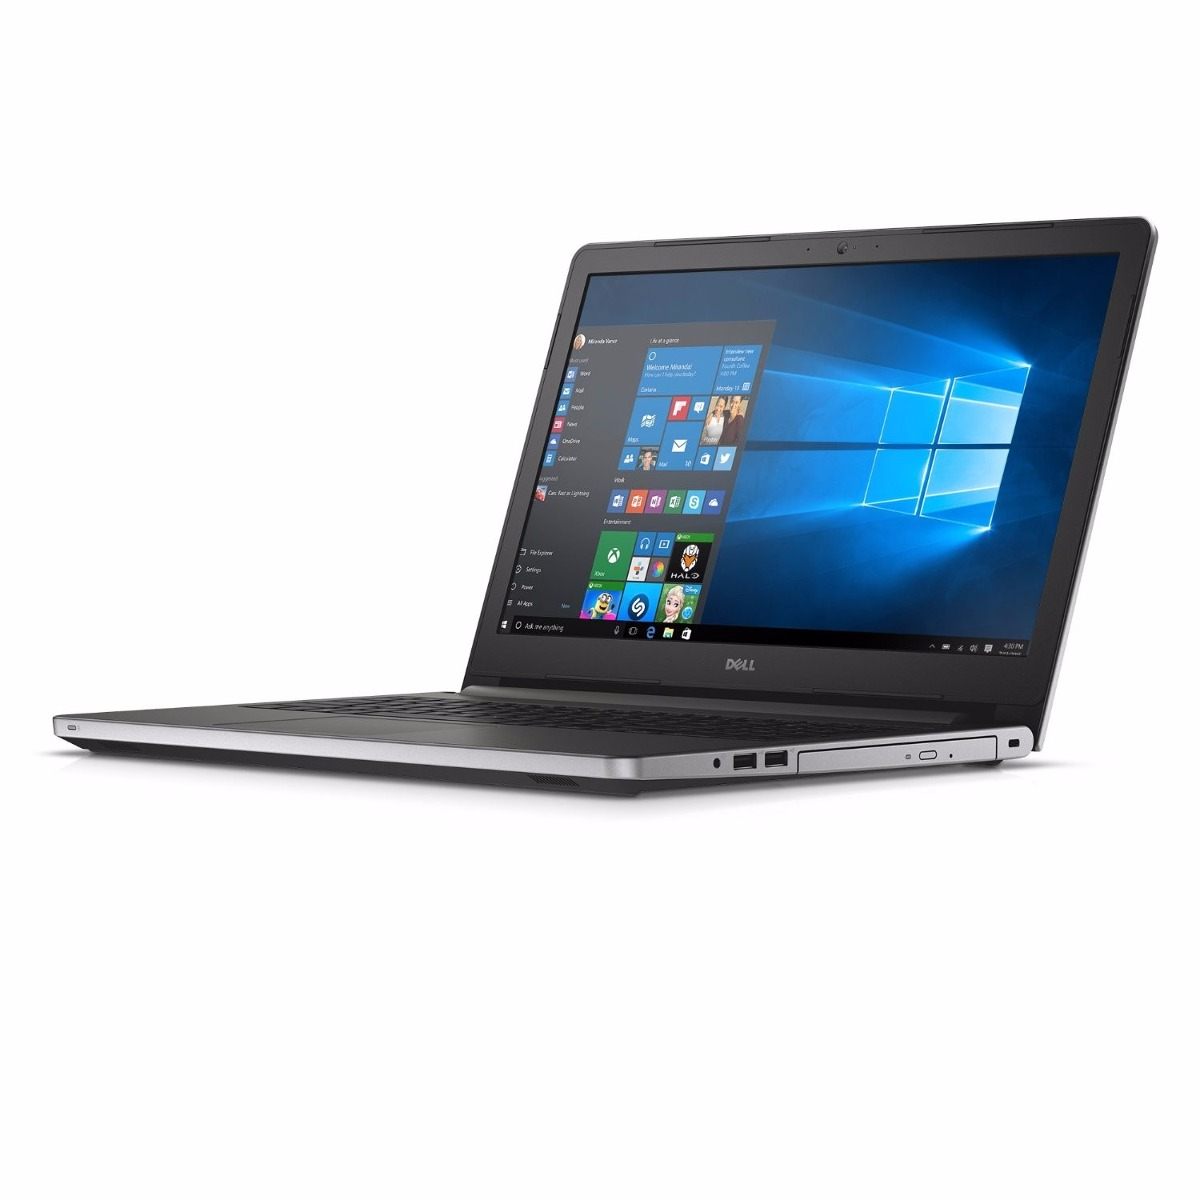 dell inspiron i5559 3347slv review